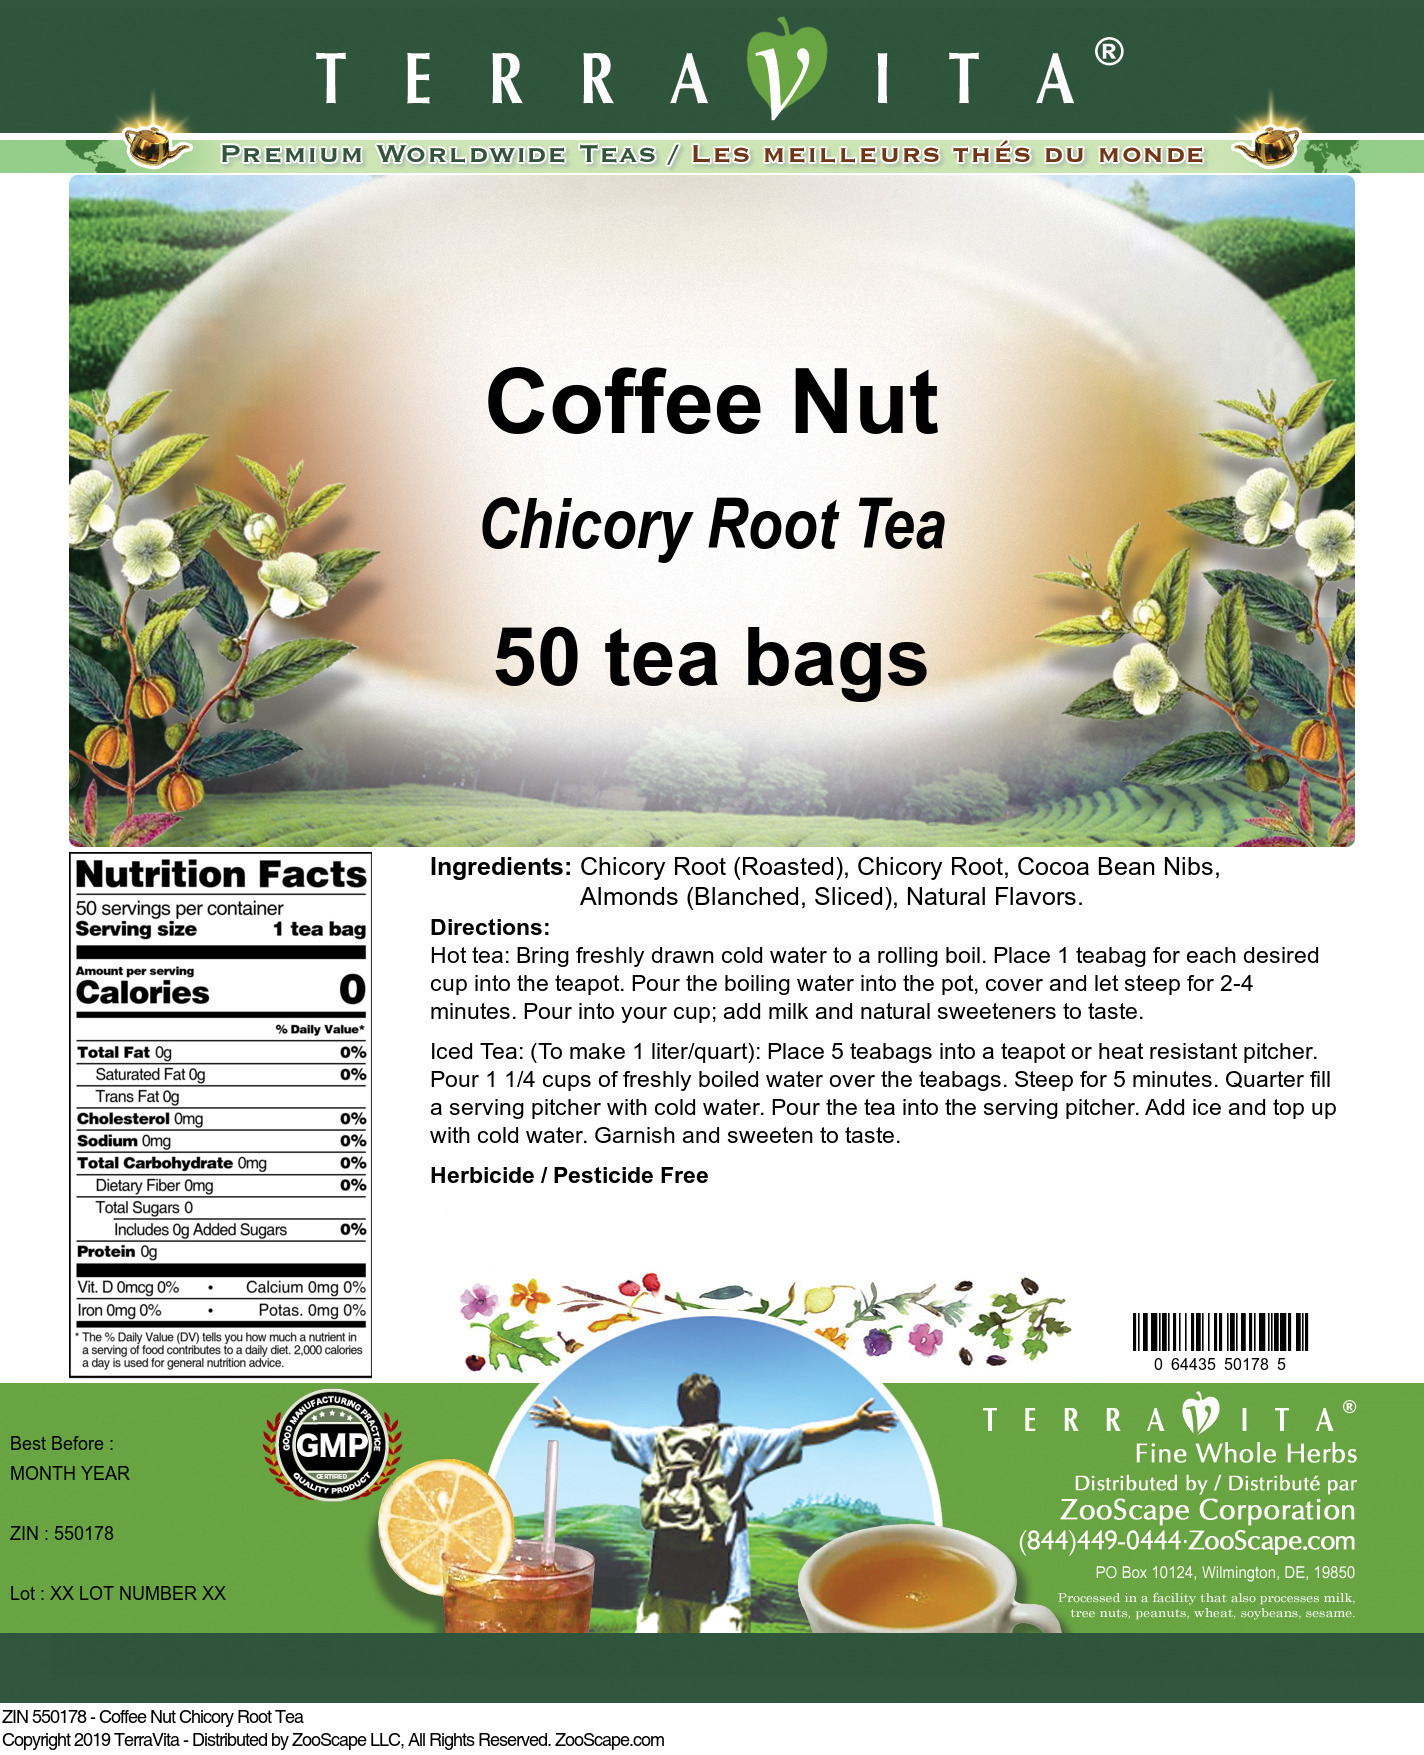 Coffee Nut Chicory Root